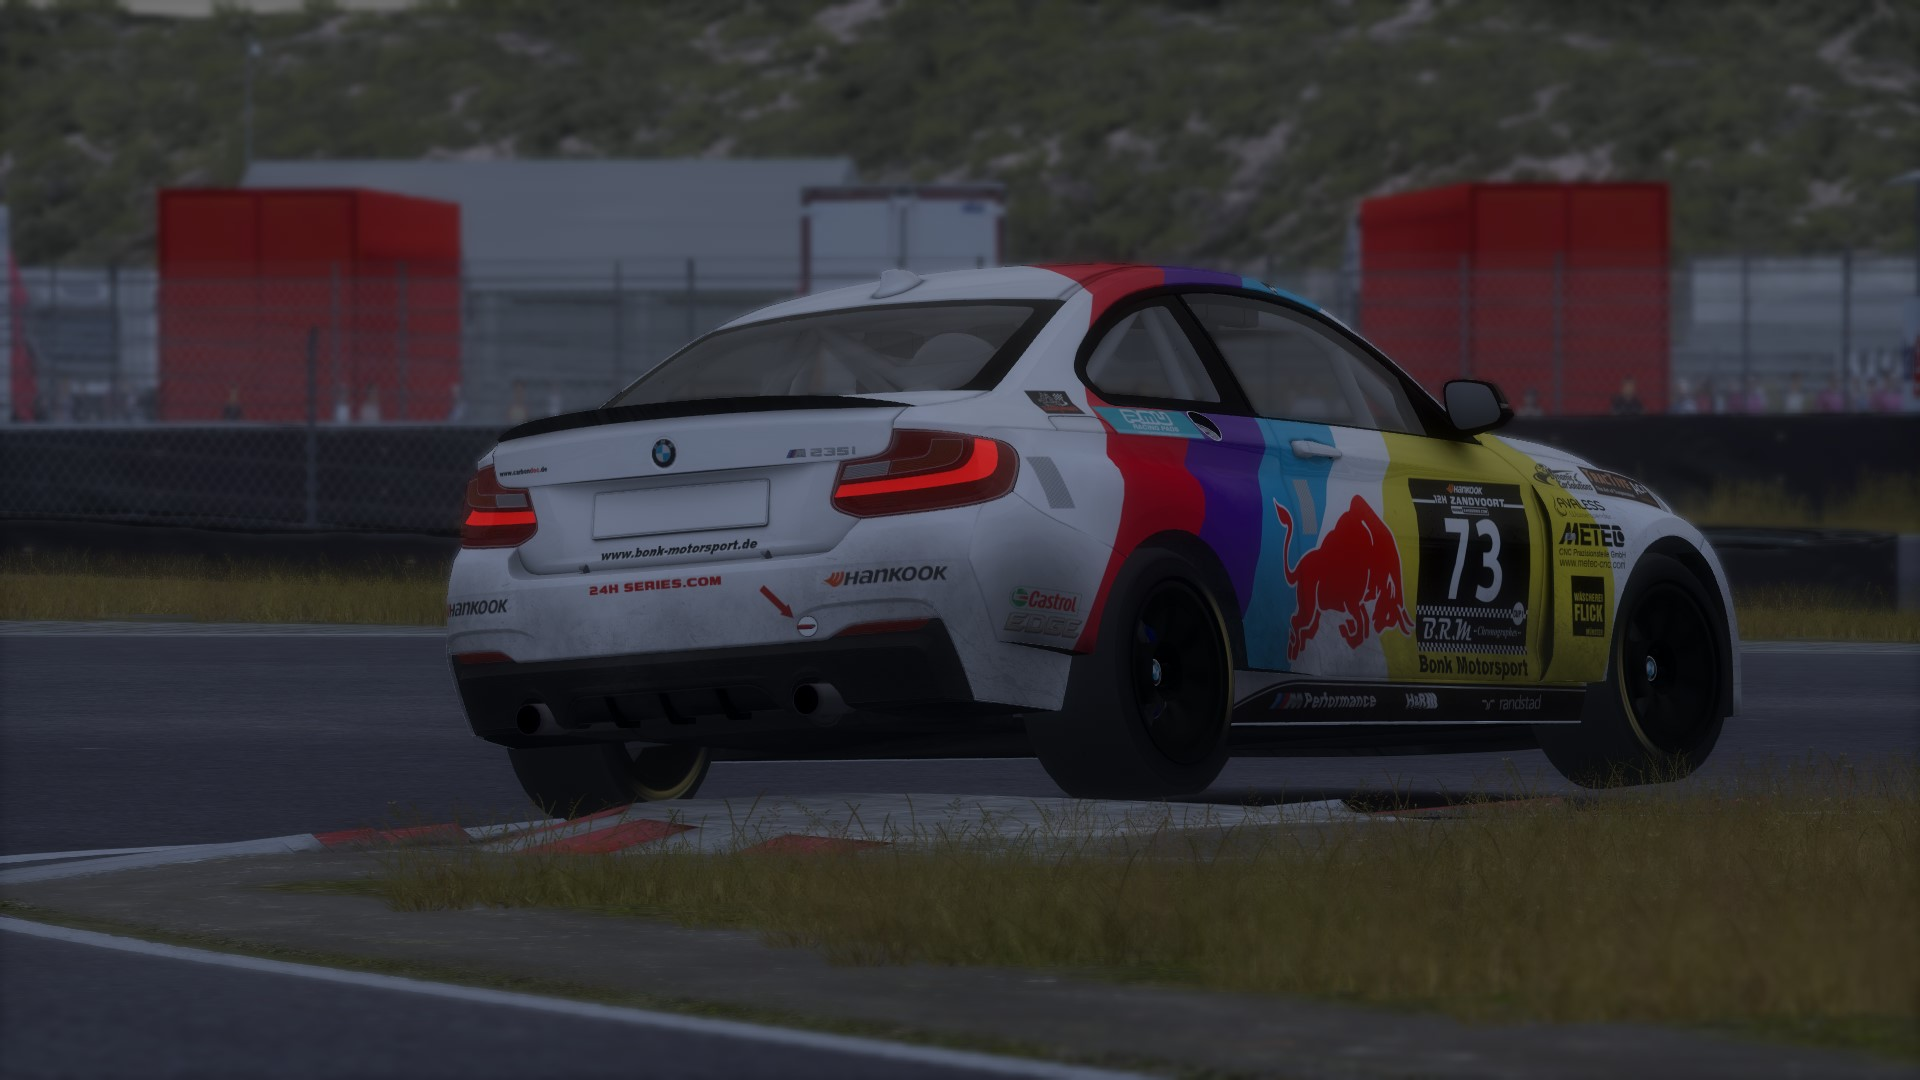 Screenshot_ks_bmw_m235i_racing_ks_zandvoort_30-8-115-21-13-14.jpg